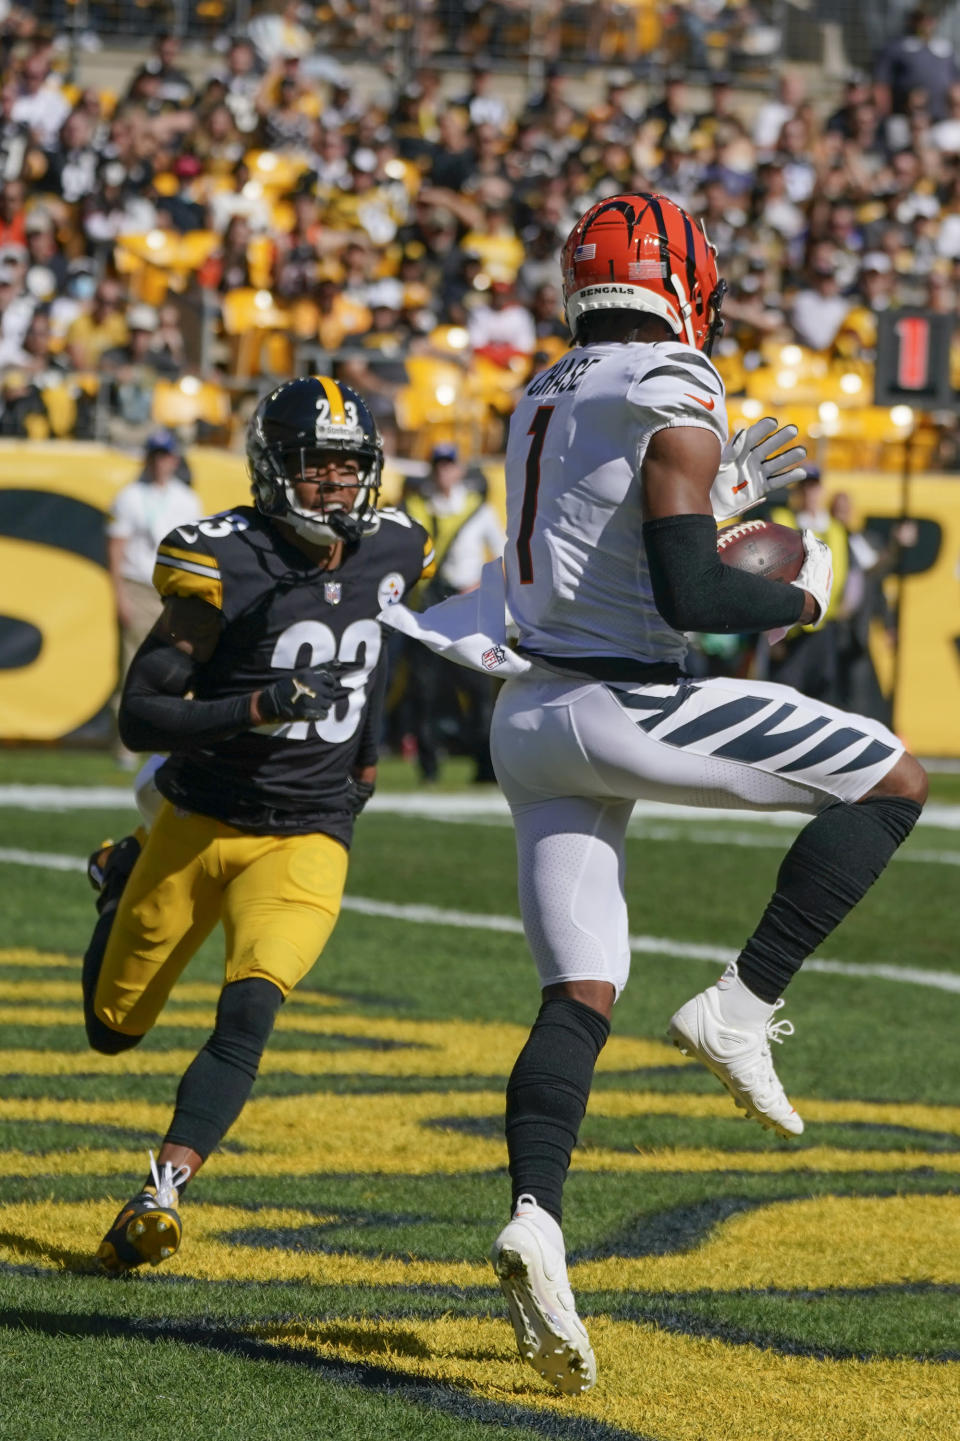 Cincinnati Bengals wide receiver Ja'Marr Chase (1) catches a touchdown pass in front of Pittsburgh Steelers cornerback Joe Haden (23) during the second half an NFL football game, Sunday, Sept. 26, 2021, in Pittsburgh. (AP Photo/Gene J. Puskar)